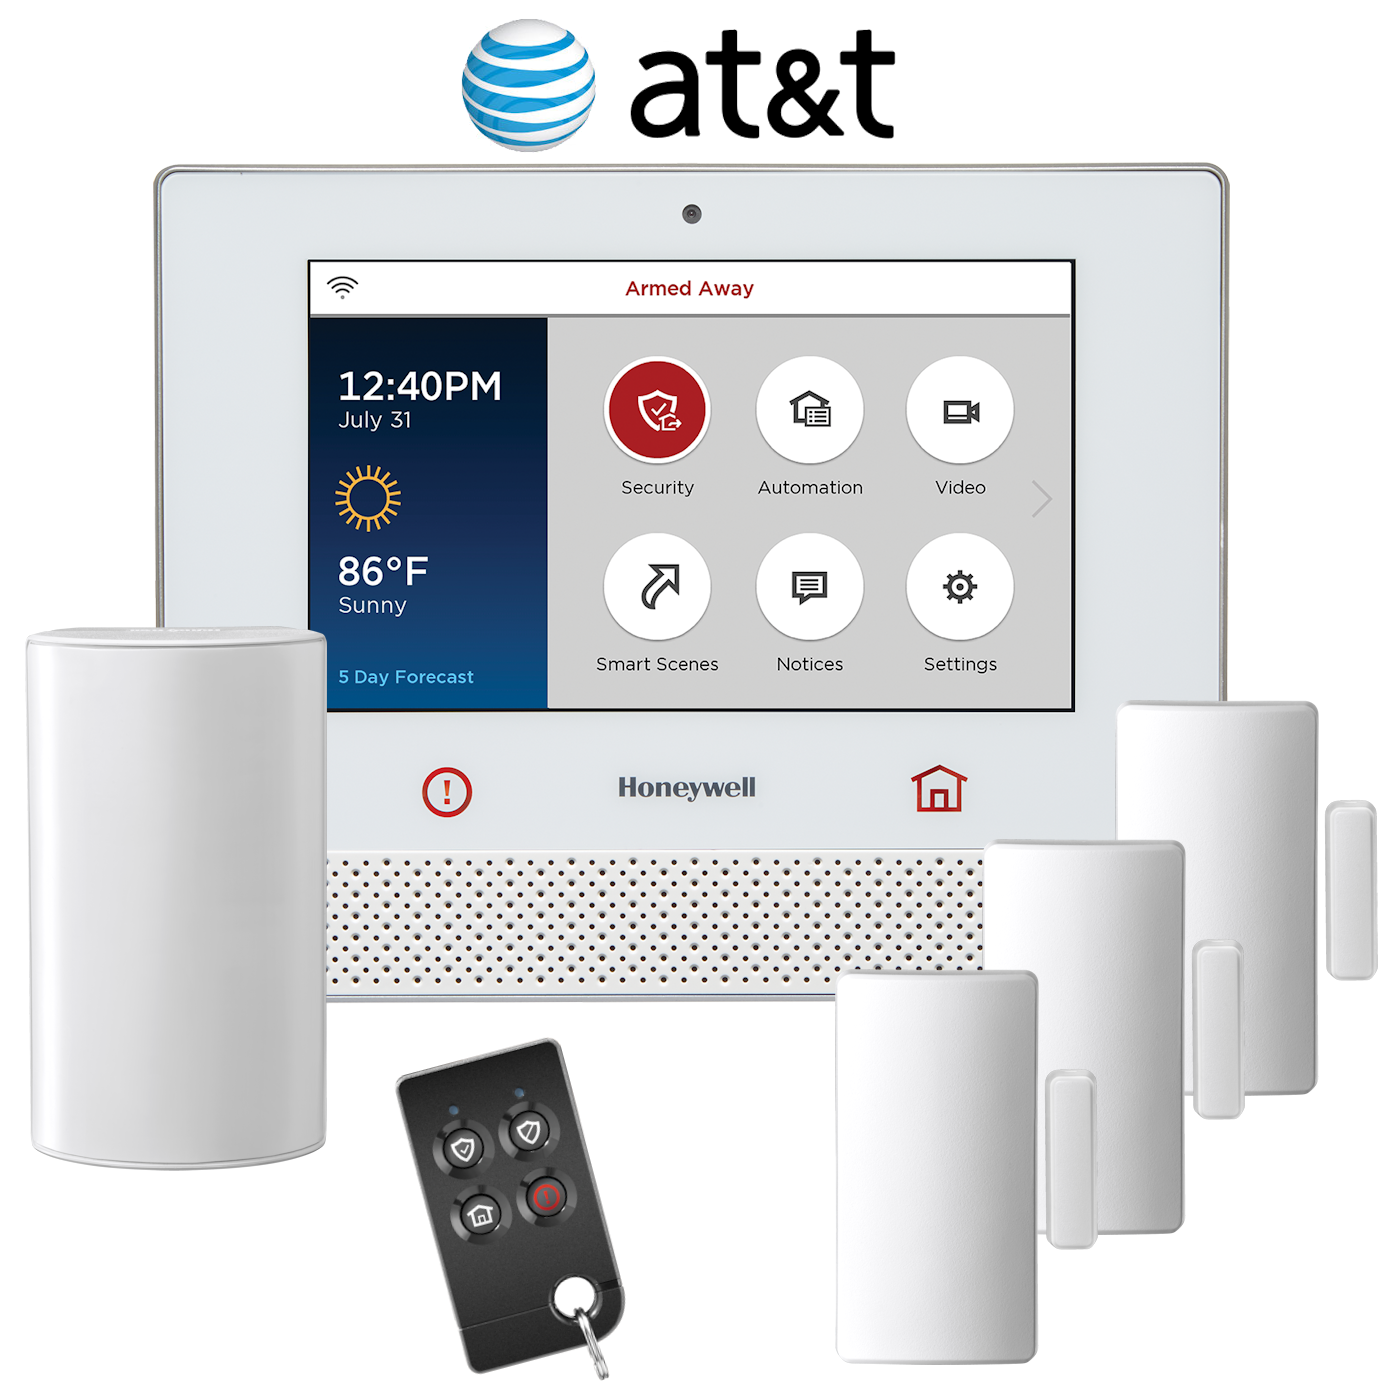 honeywell lyric cellular 3g wireless security system kit via at t network. Black Bedroom Furniture Sets. Home Design Ideas